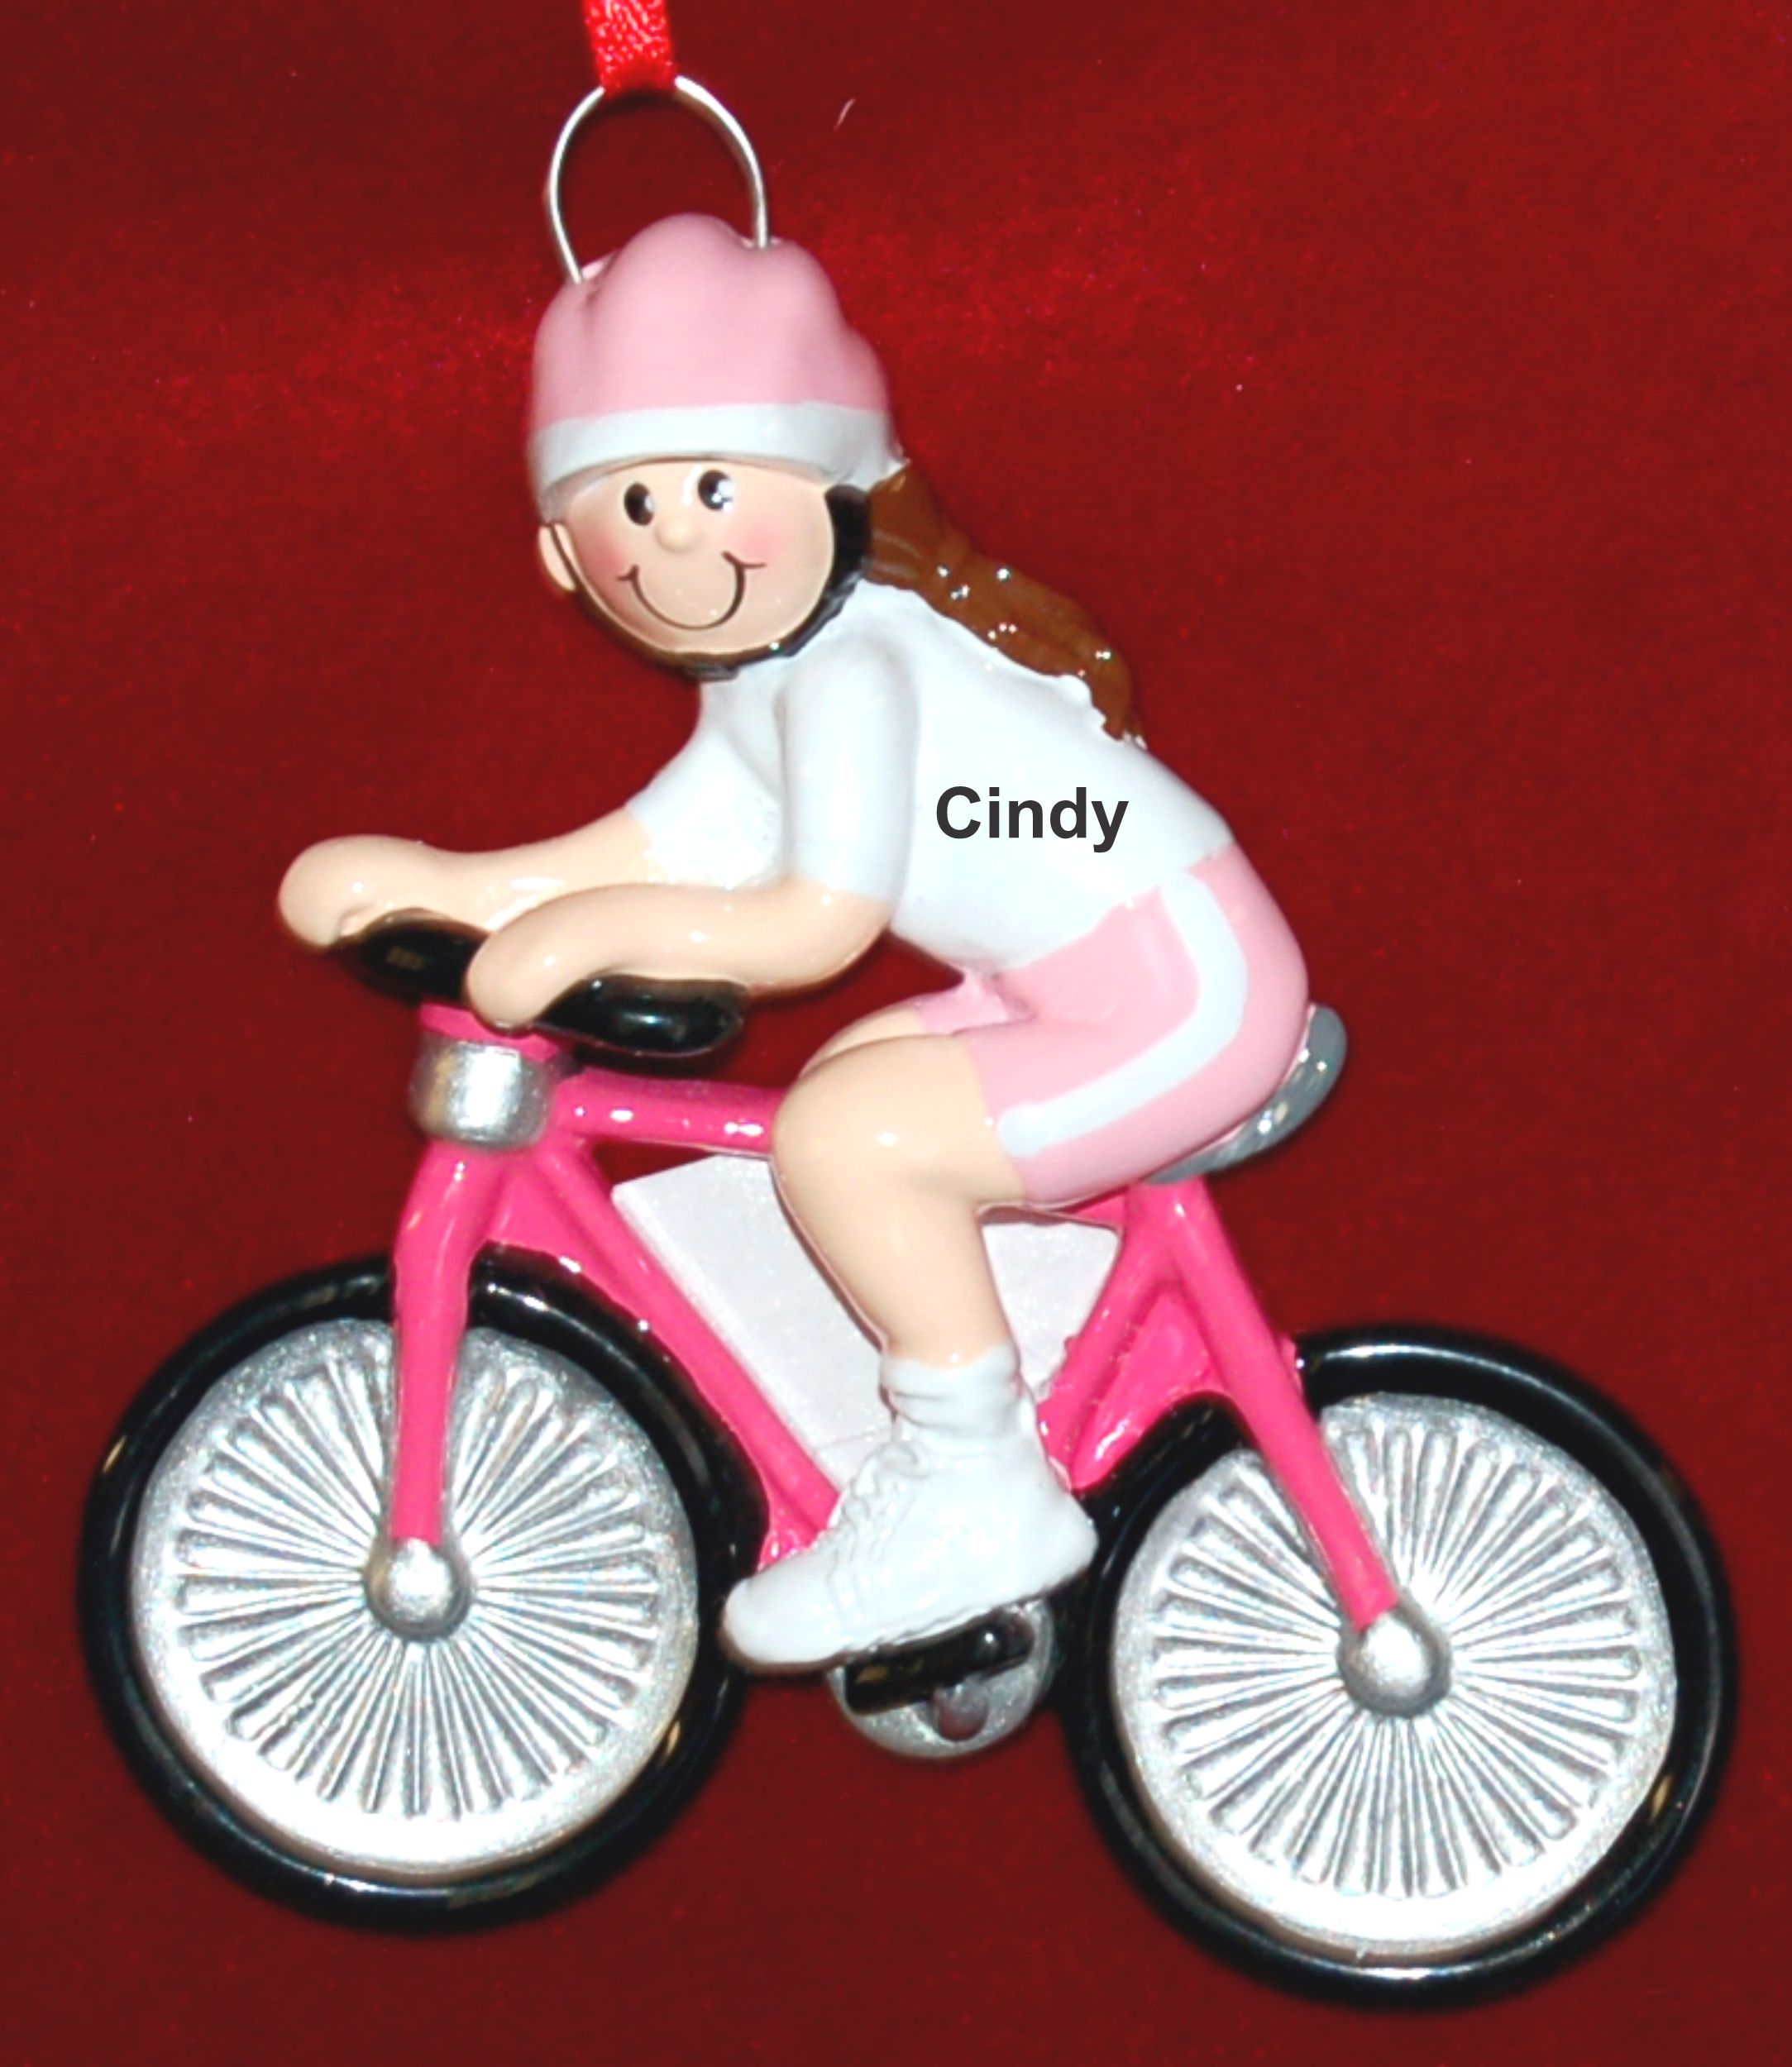 Personalized Bike Christmas Ornament Cyclist Female by Russell Rhodes